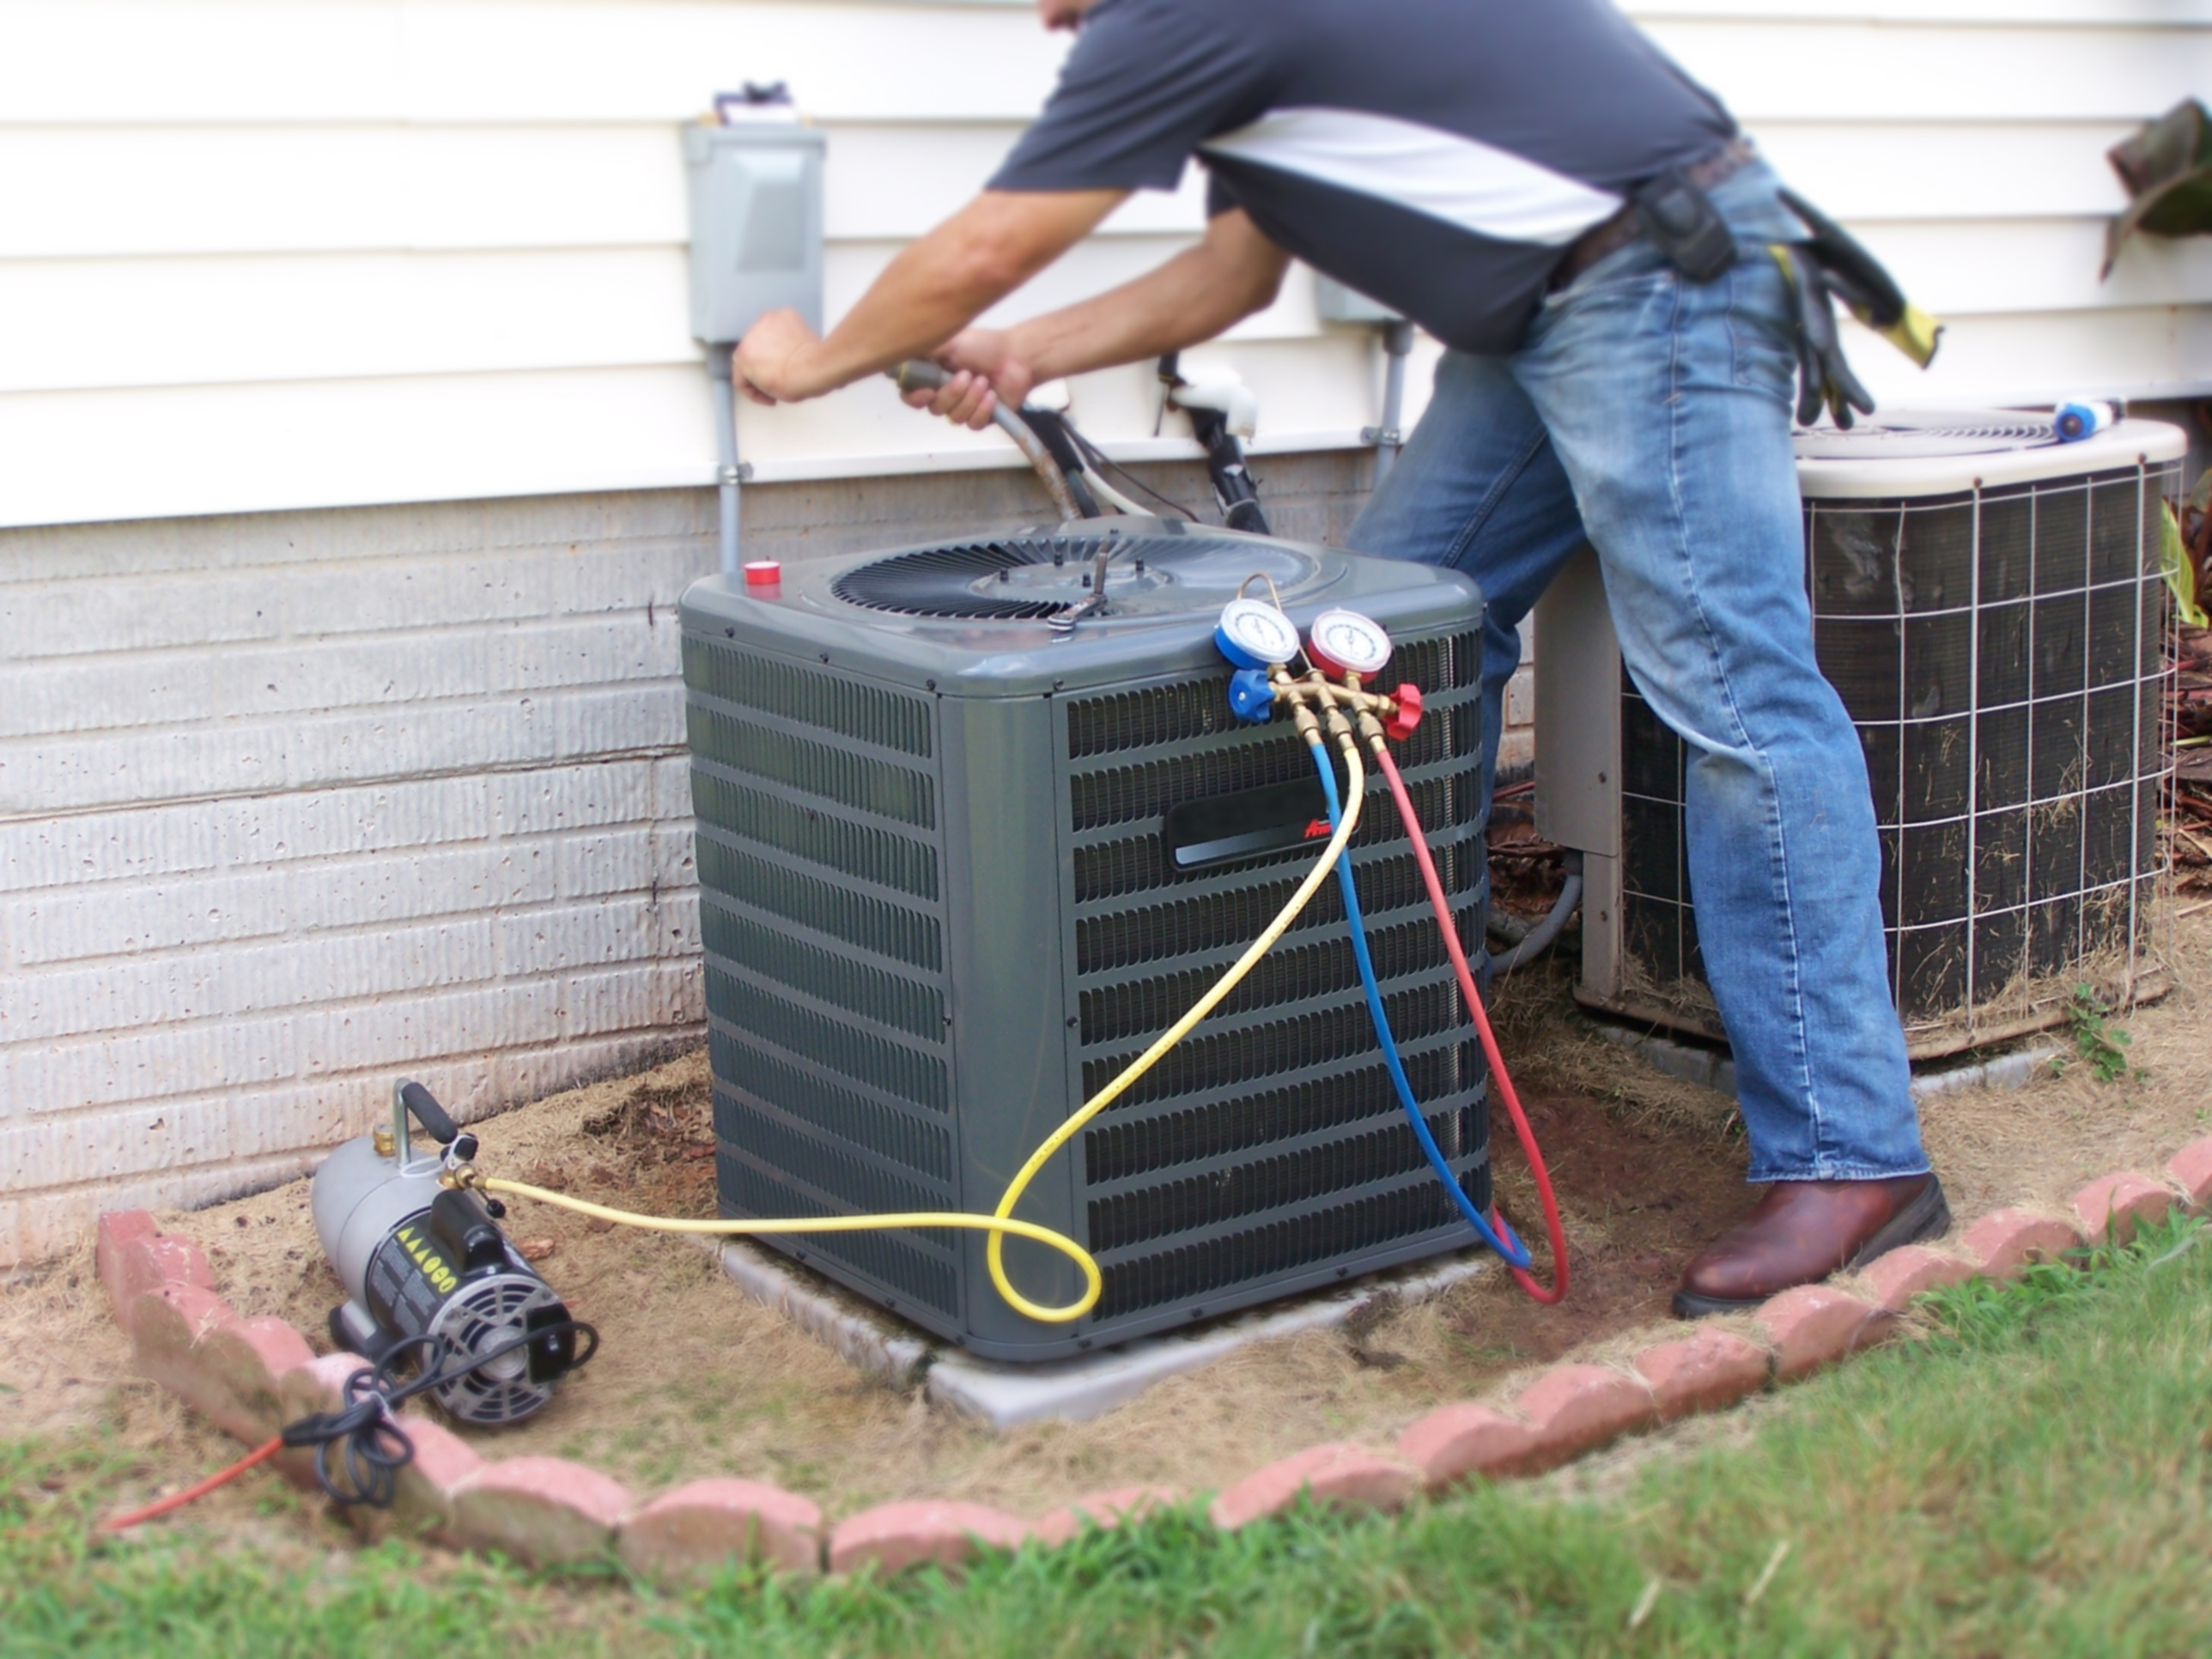 24 Hour Air Conditioning Service North miami beach, FL 33160